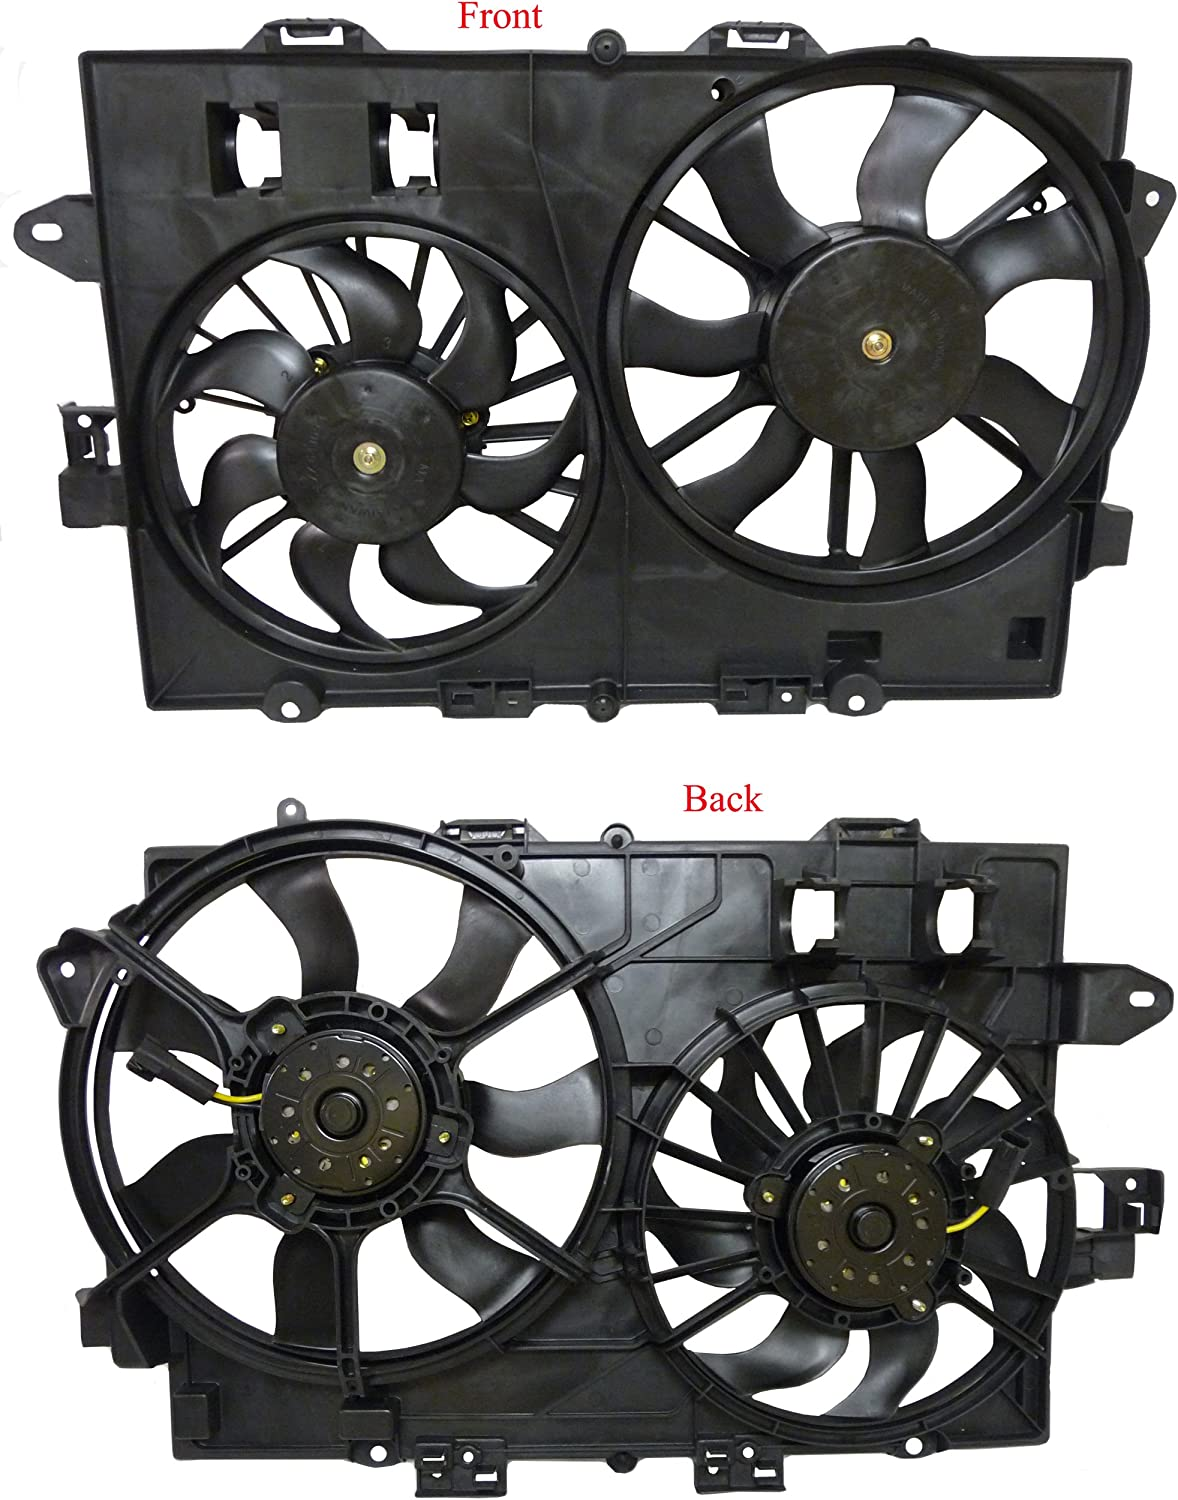 Radiator Cooling Fan Assembly For 06-08 Chevy Equinox Pontiac Torrent 19129813